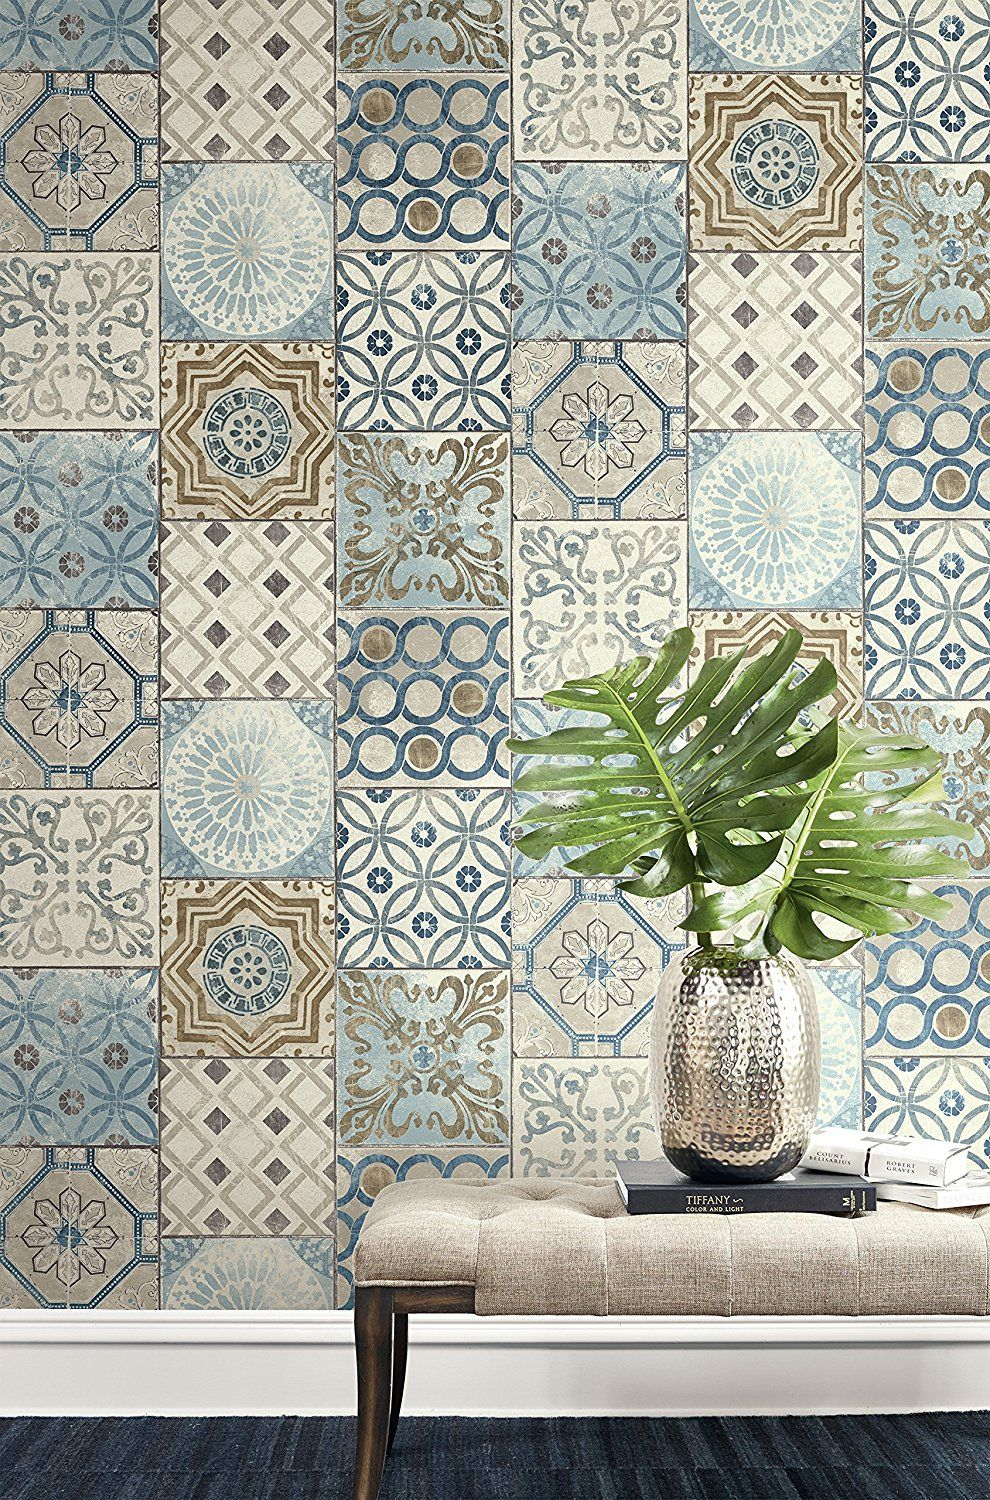 Nextwall Moroccan Style Peel And Stick Mosaic Tile Wallpaper Blue Copper Grey Amazon Com In 2020 Mosaic Wallpaper Moroccan Home Decor Moroccan Tile